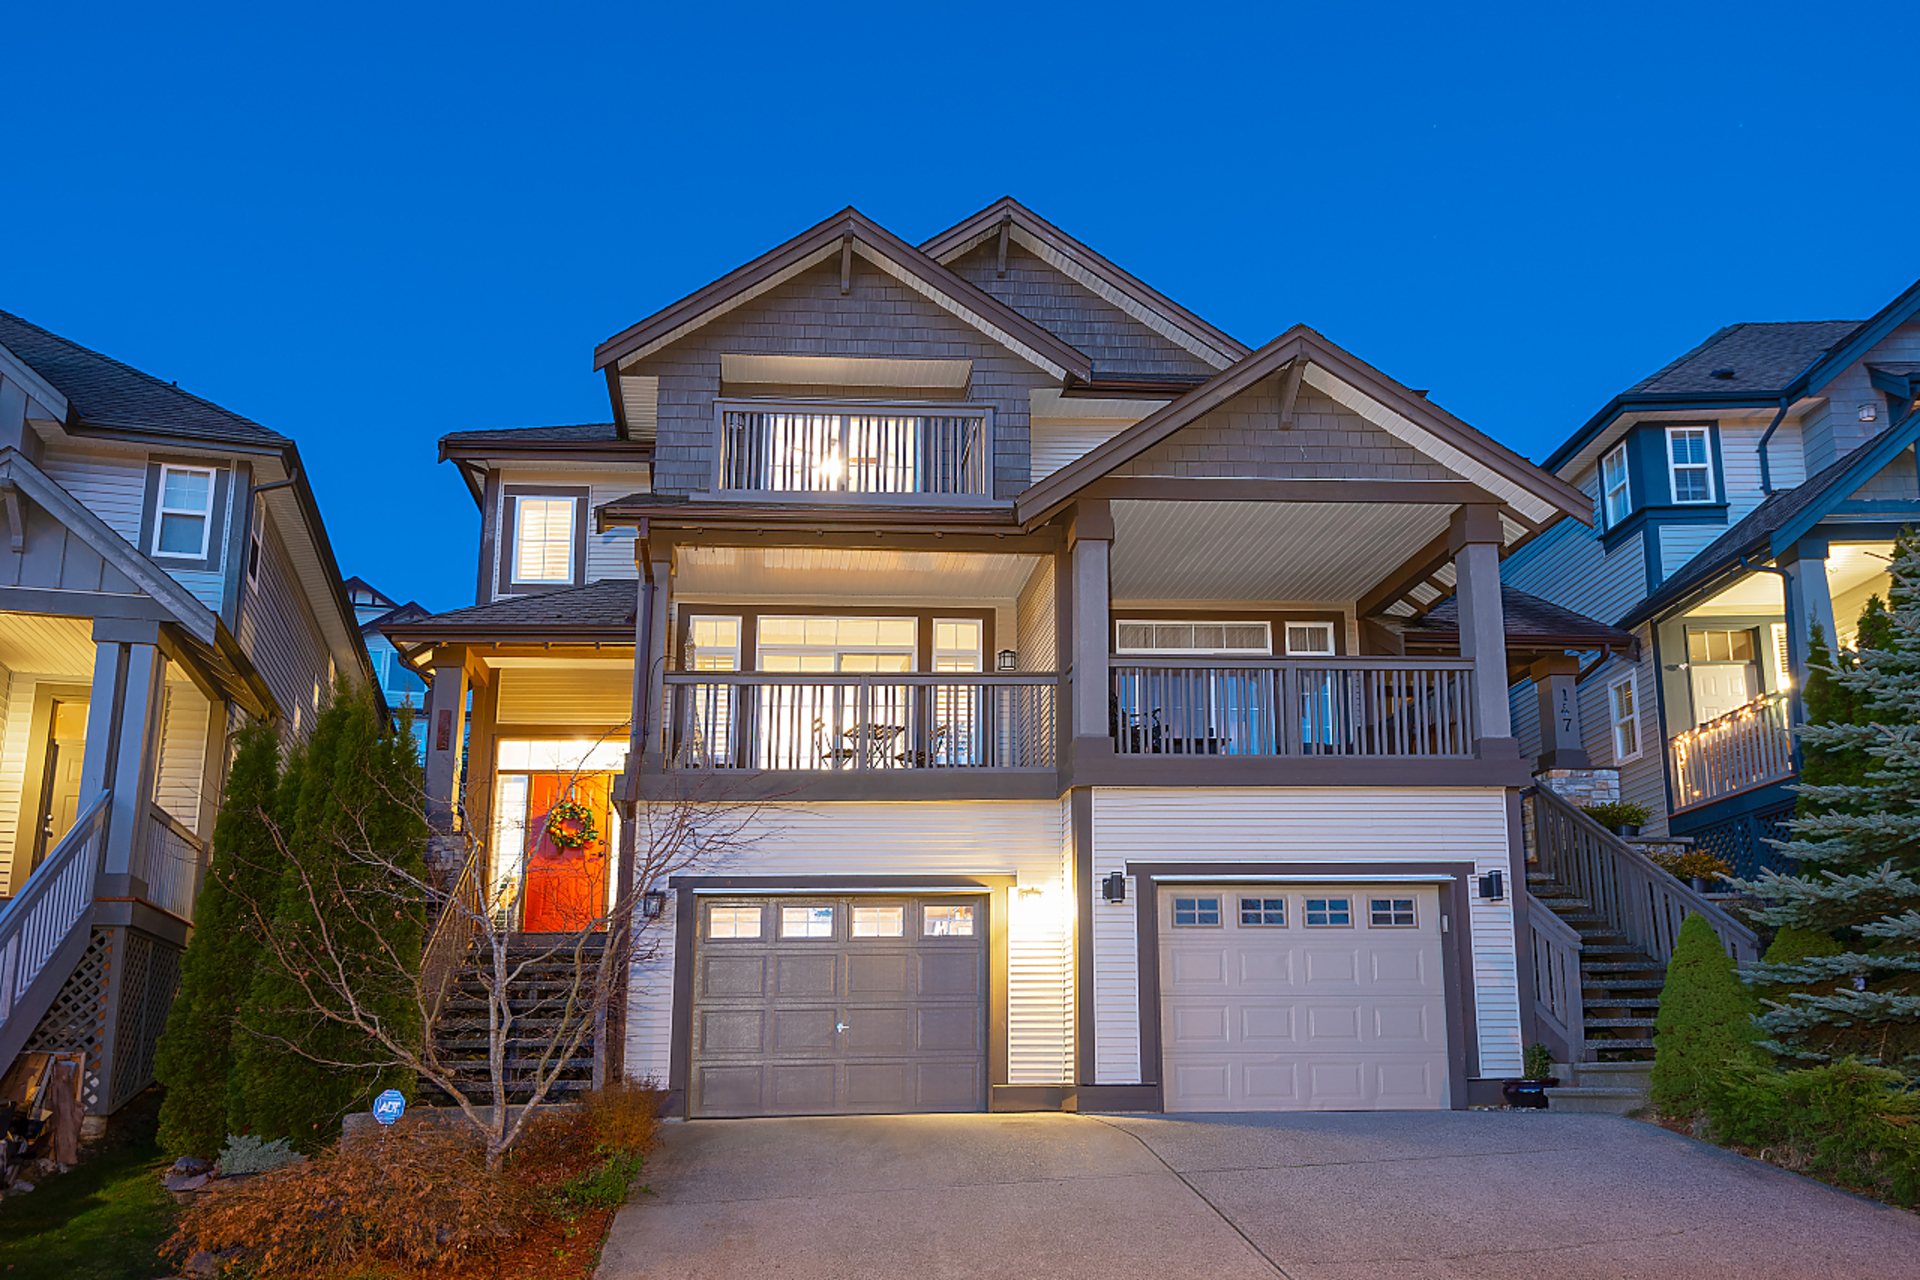 003 at 145 Forest Parkway, Heritage Woods PM, Port Moody